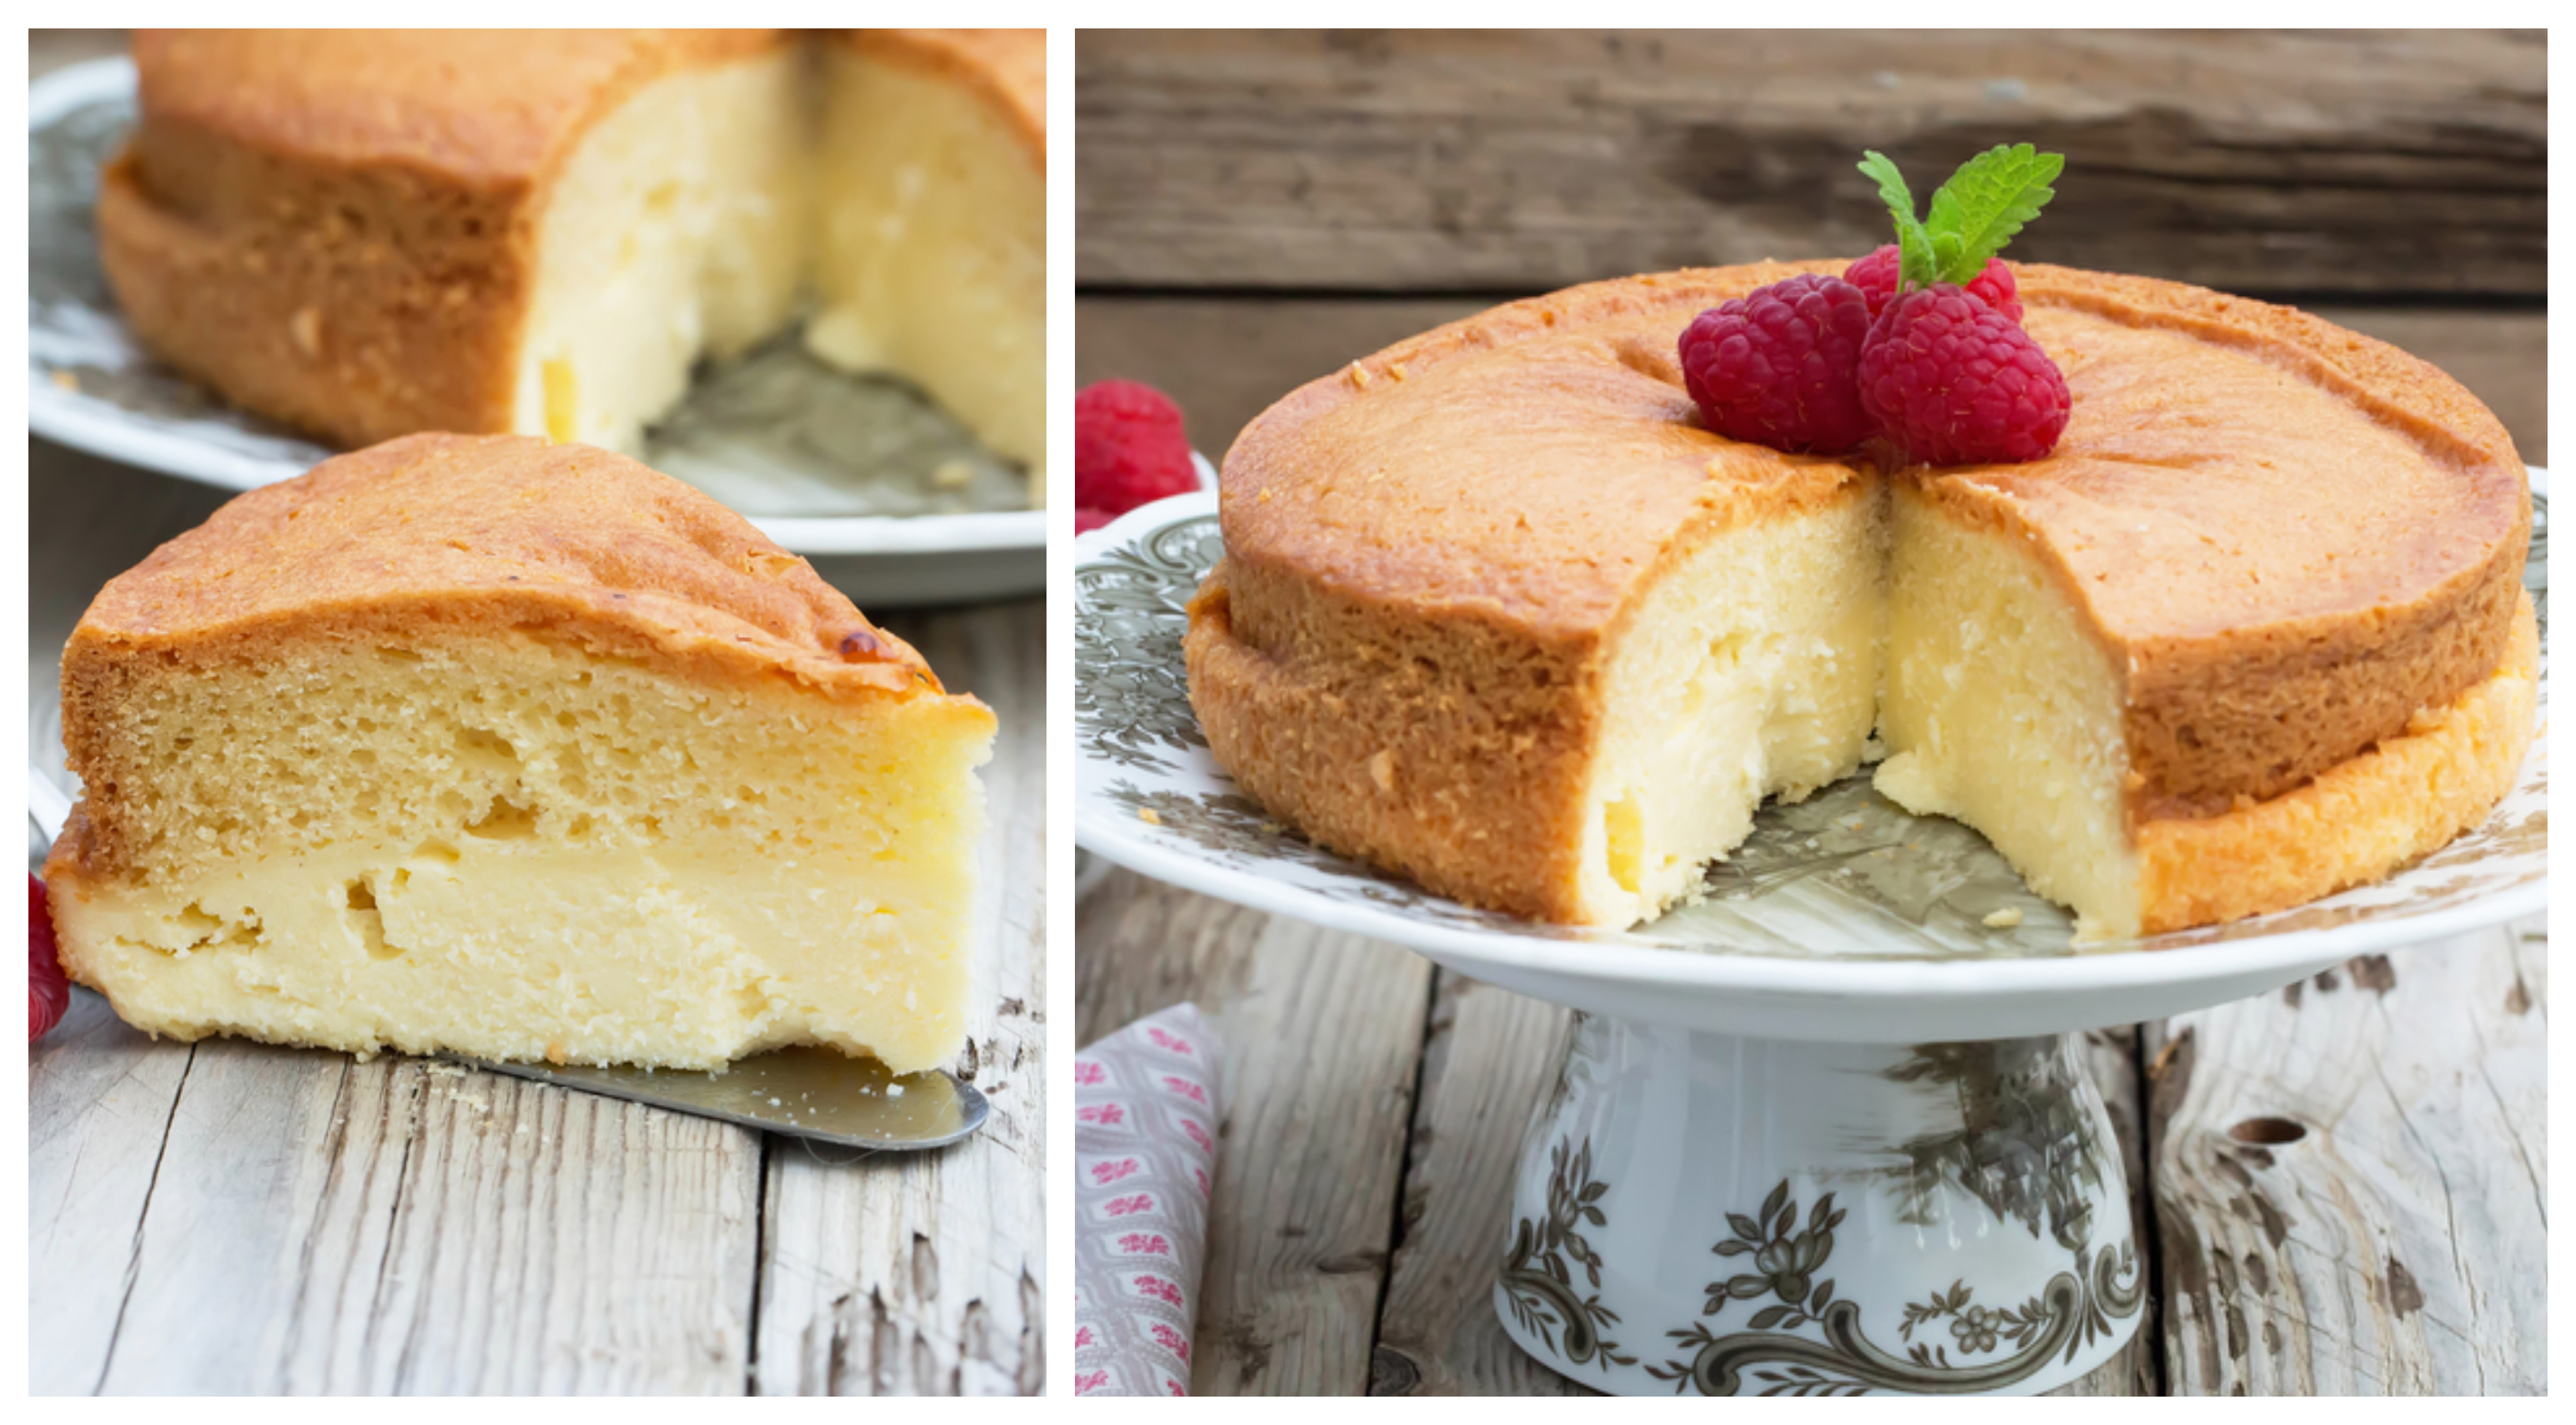 Cheesecake magic